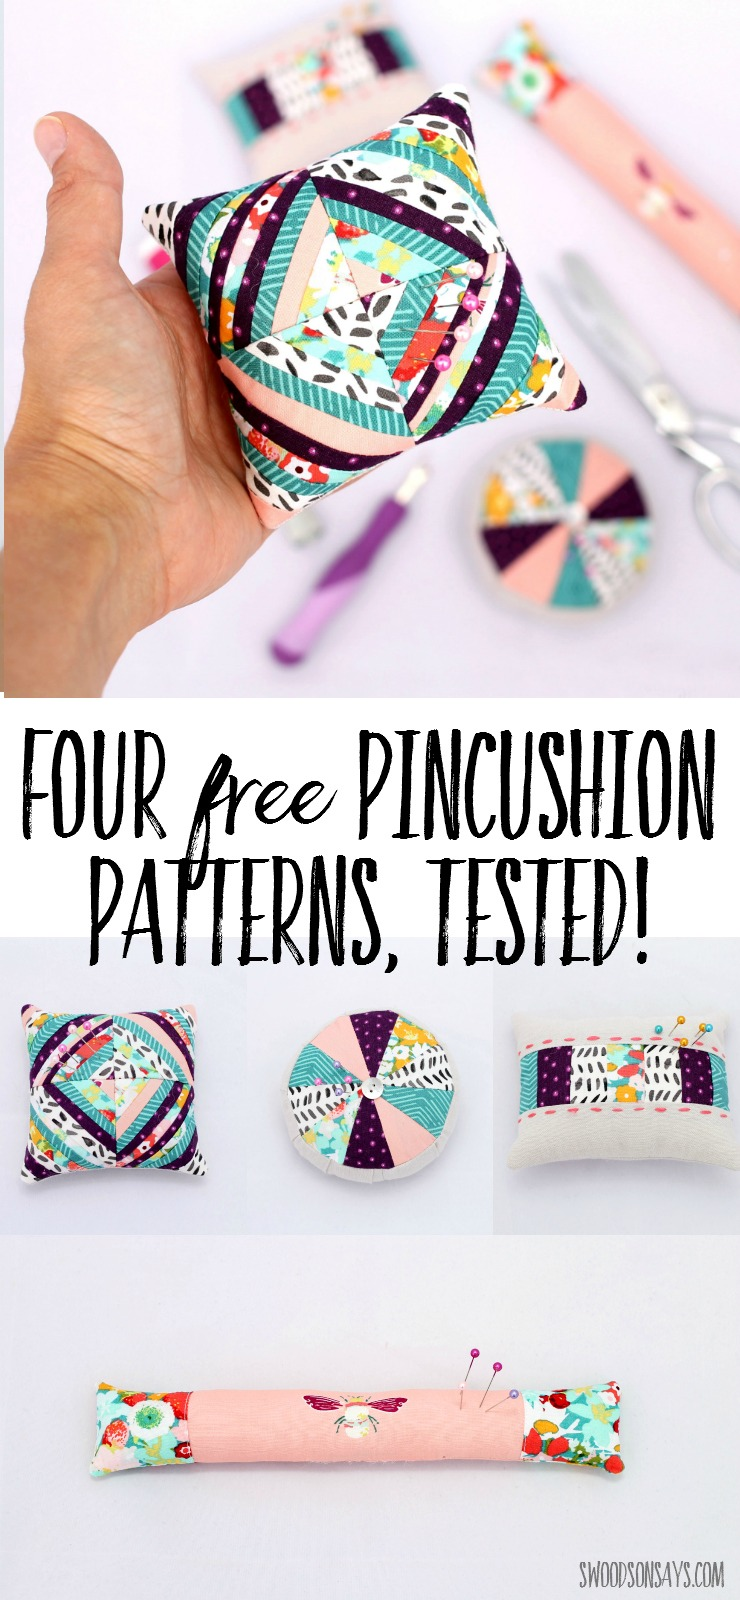 I tested four free pincushion patterns - come see what I thought of each one and get the links! Great scrap buster pincushion tutorials and handmade gift ideas.